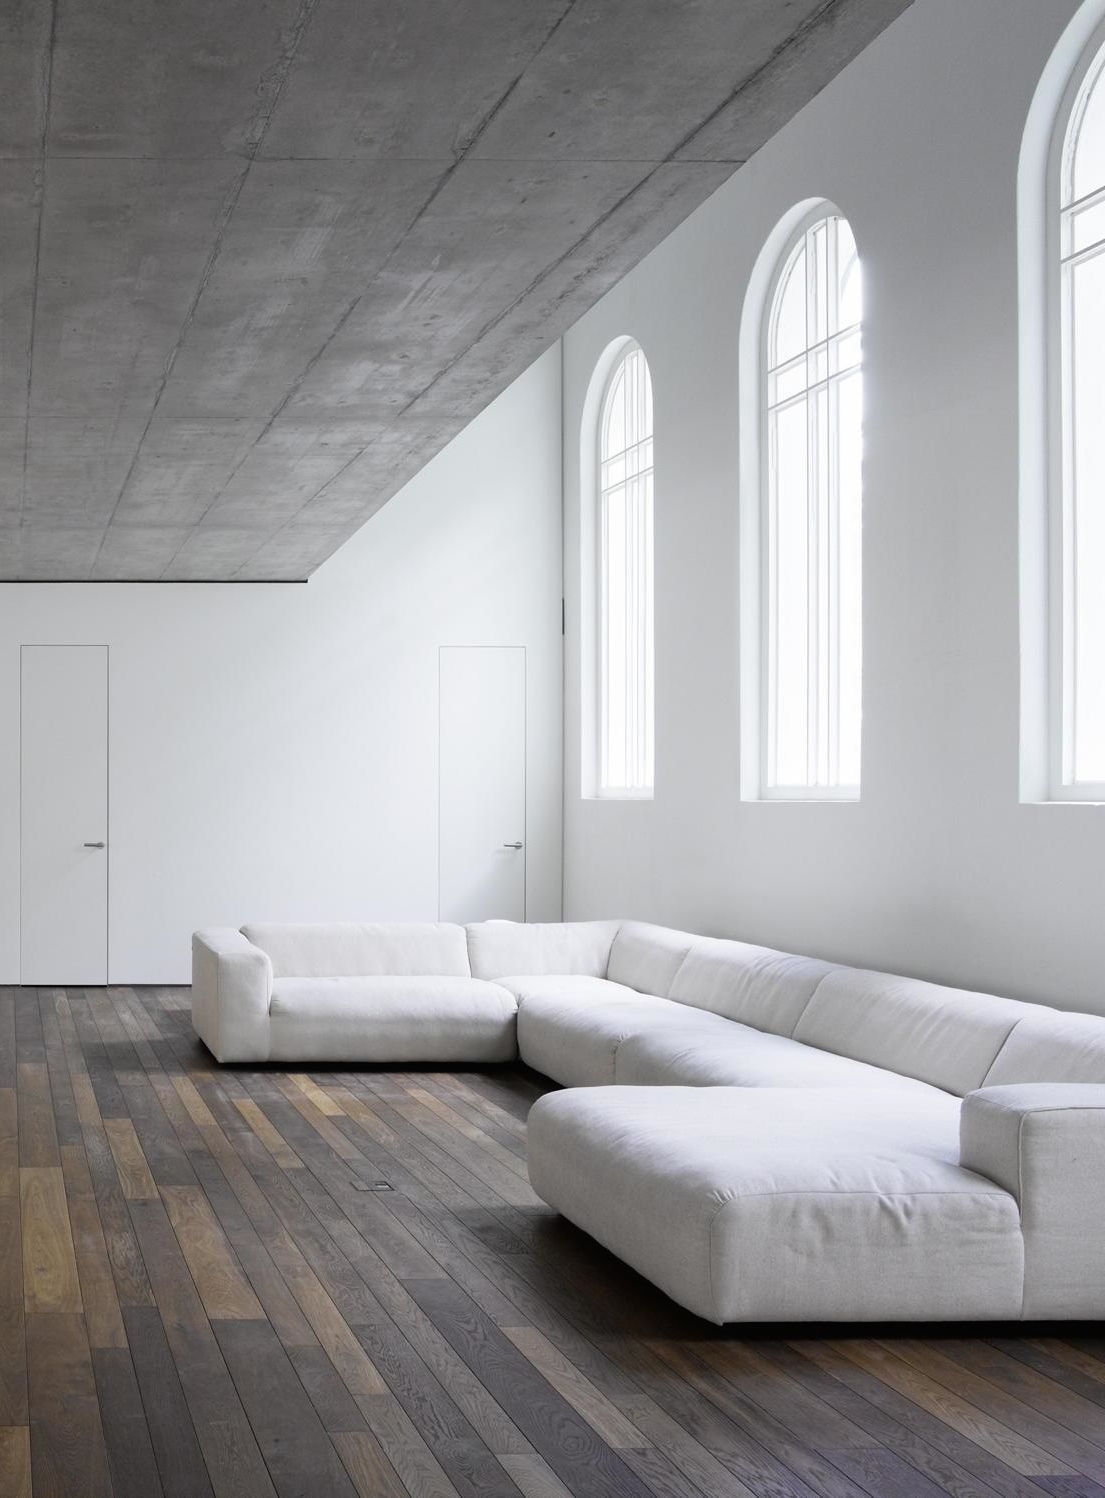 White Sofa Design Ideas & Pictures For Living Room | Arch windows ...